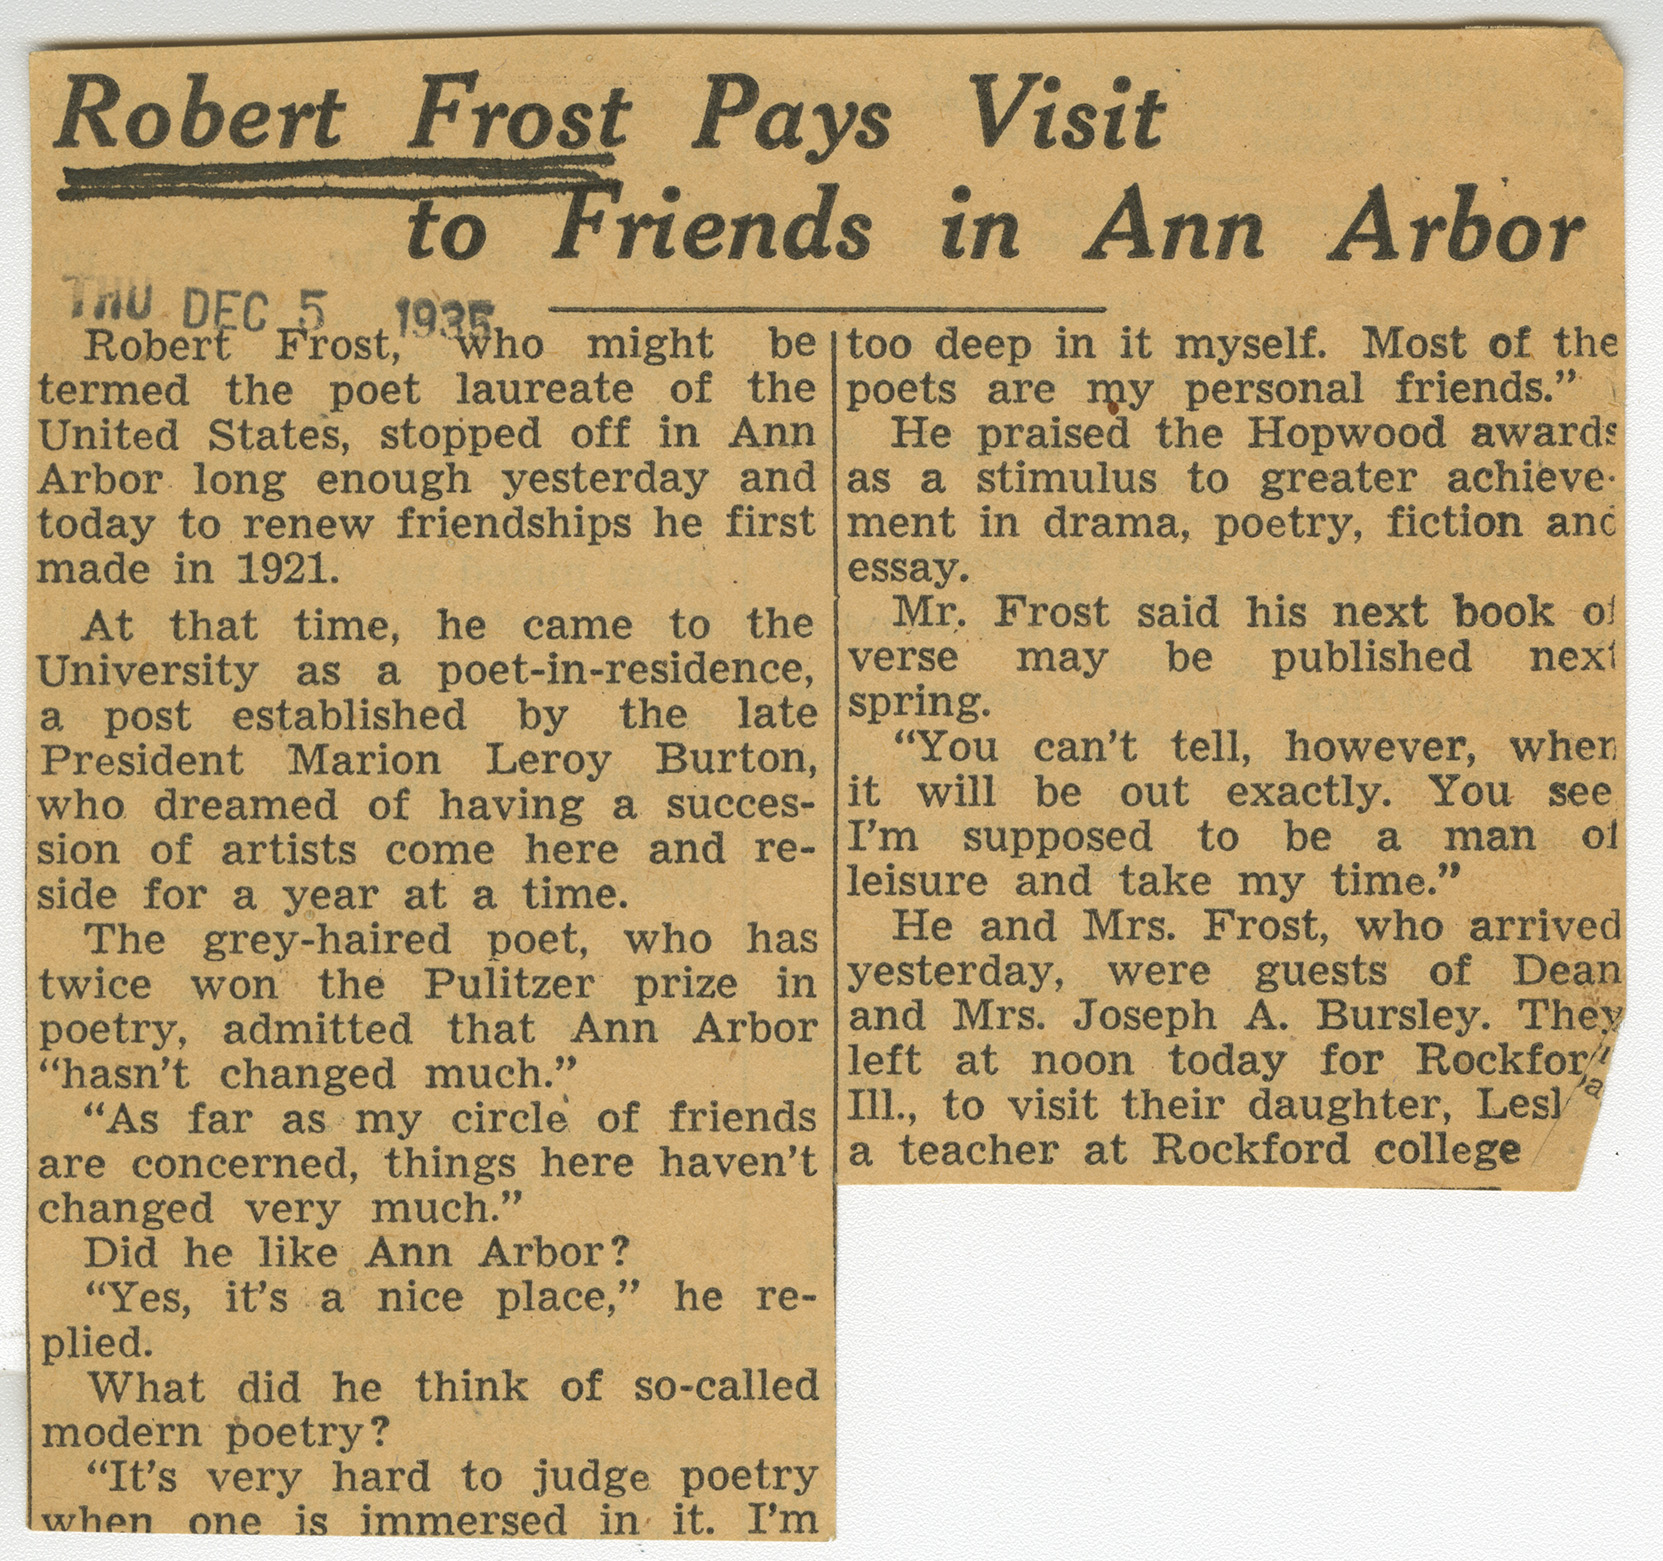 Robert Frost Pays Visit to Friends in Ann Arbor image